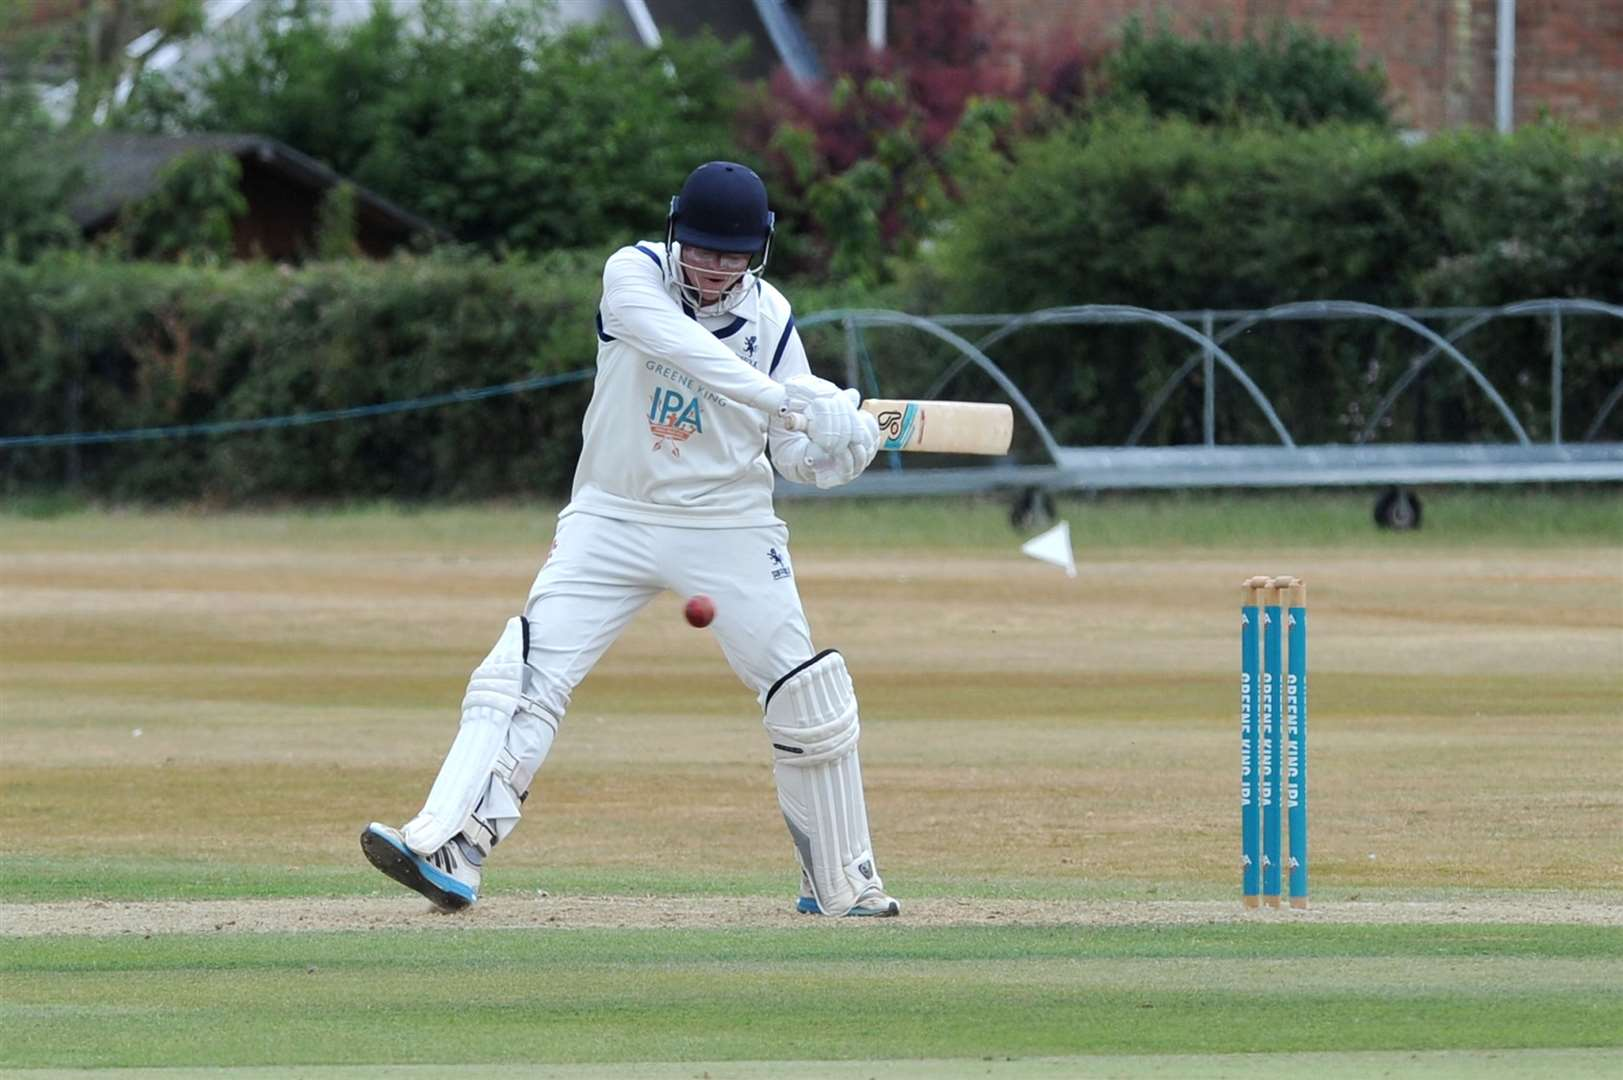 CRICKET - Suffolk (Batting) v Bedfordshire 3 day match (Monday)..Pictured: Jack Beaumont ...PICTURE: Mecha Morton. ... (33485144)